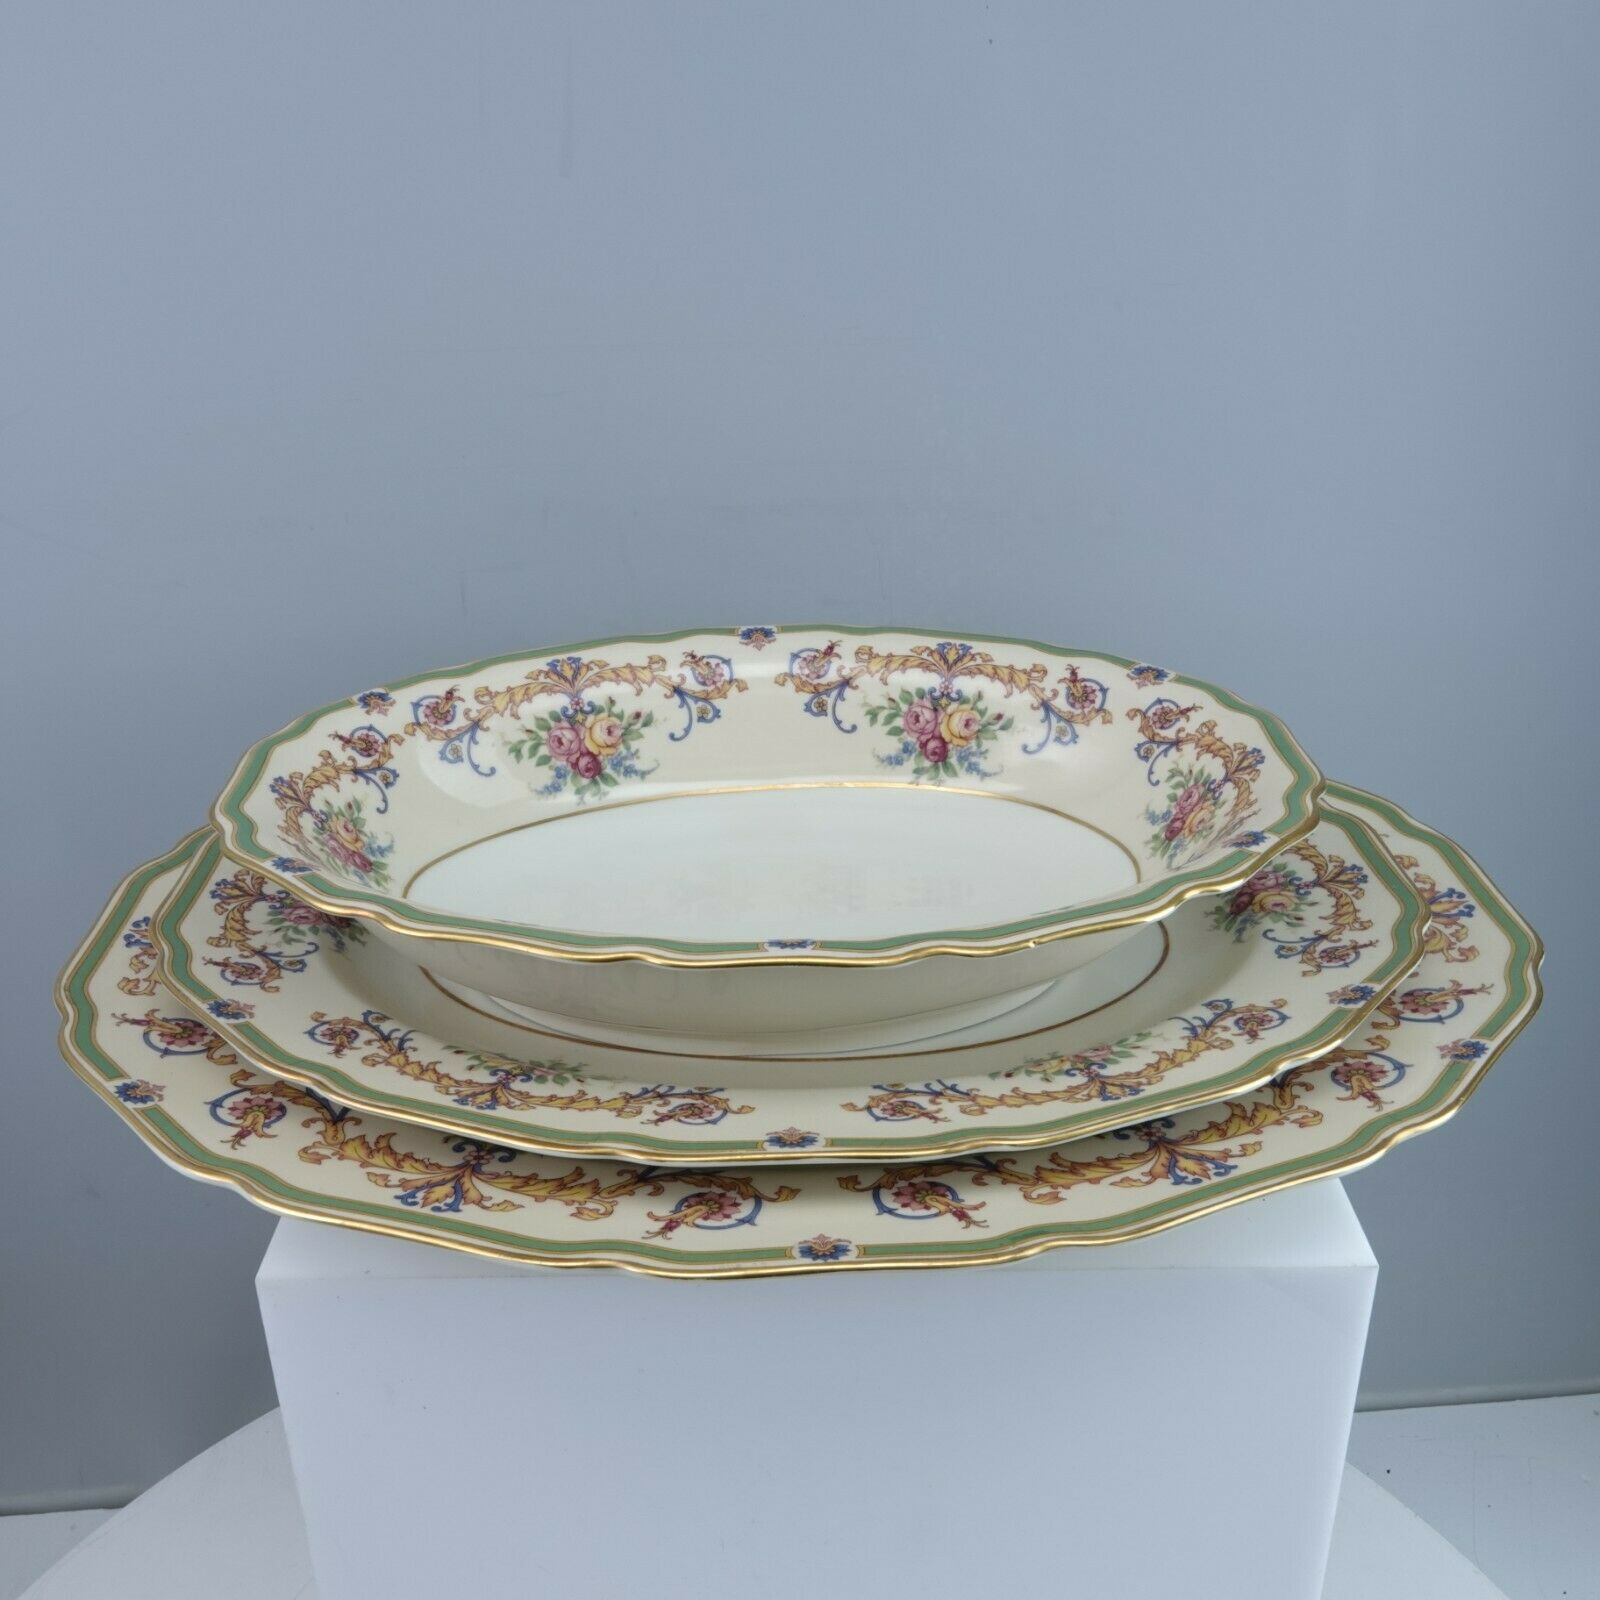 Primary image for Rosenthal WESTBURY 2 Platters and Oval Vegetable Mint Unused Condition